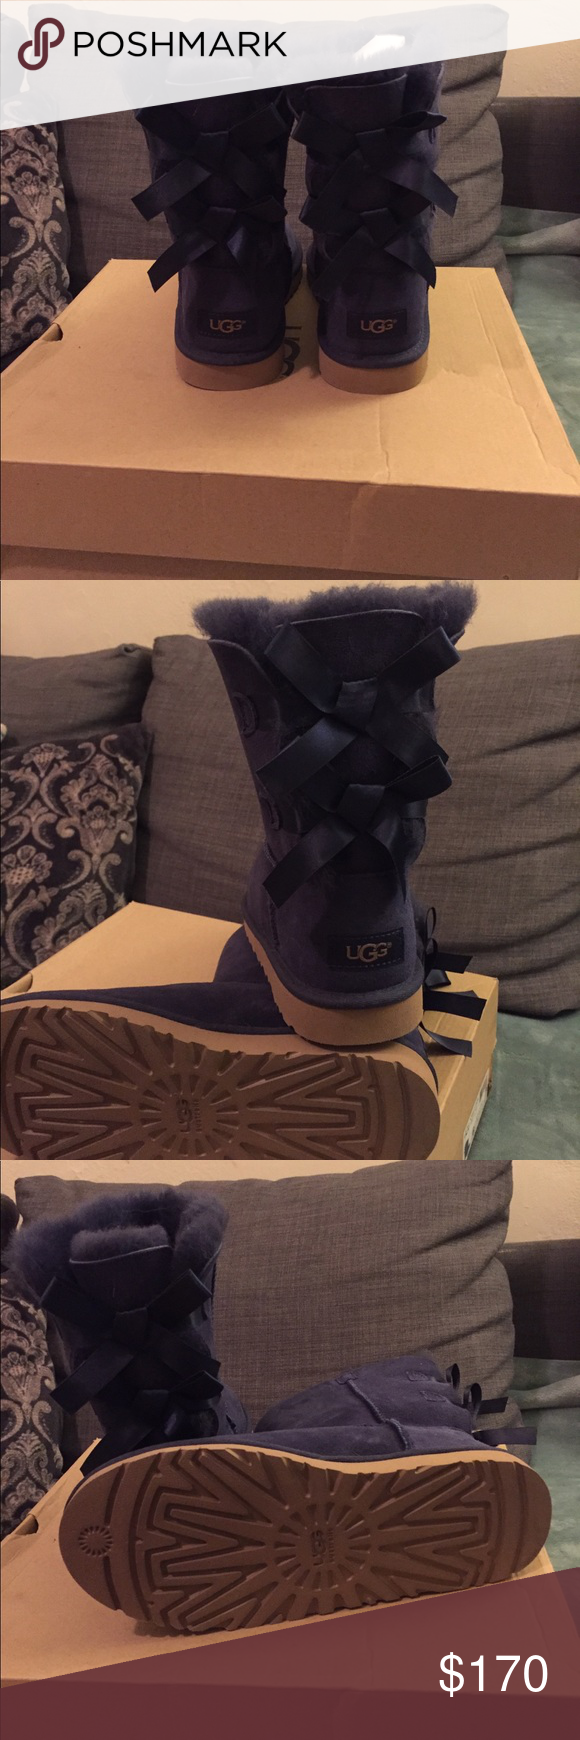 a92ca69cfcf UGG BAILEY BOW BOOTS Navy blue, NWB, NWT UGG Shoes Winter & Rain ...